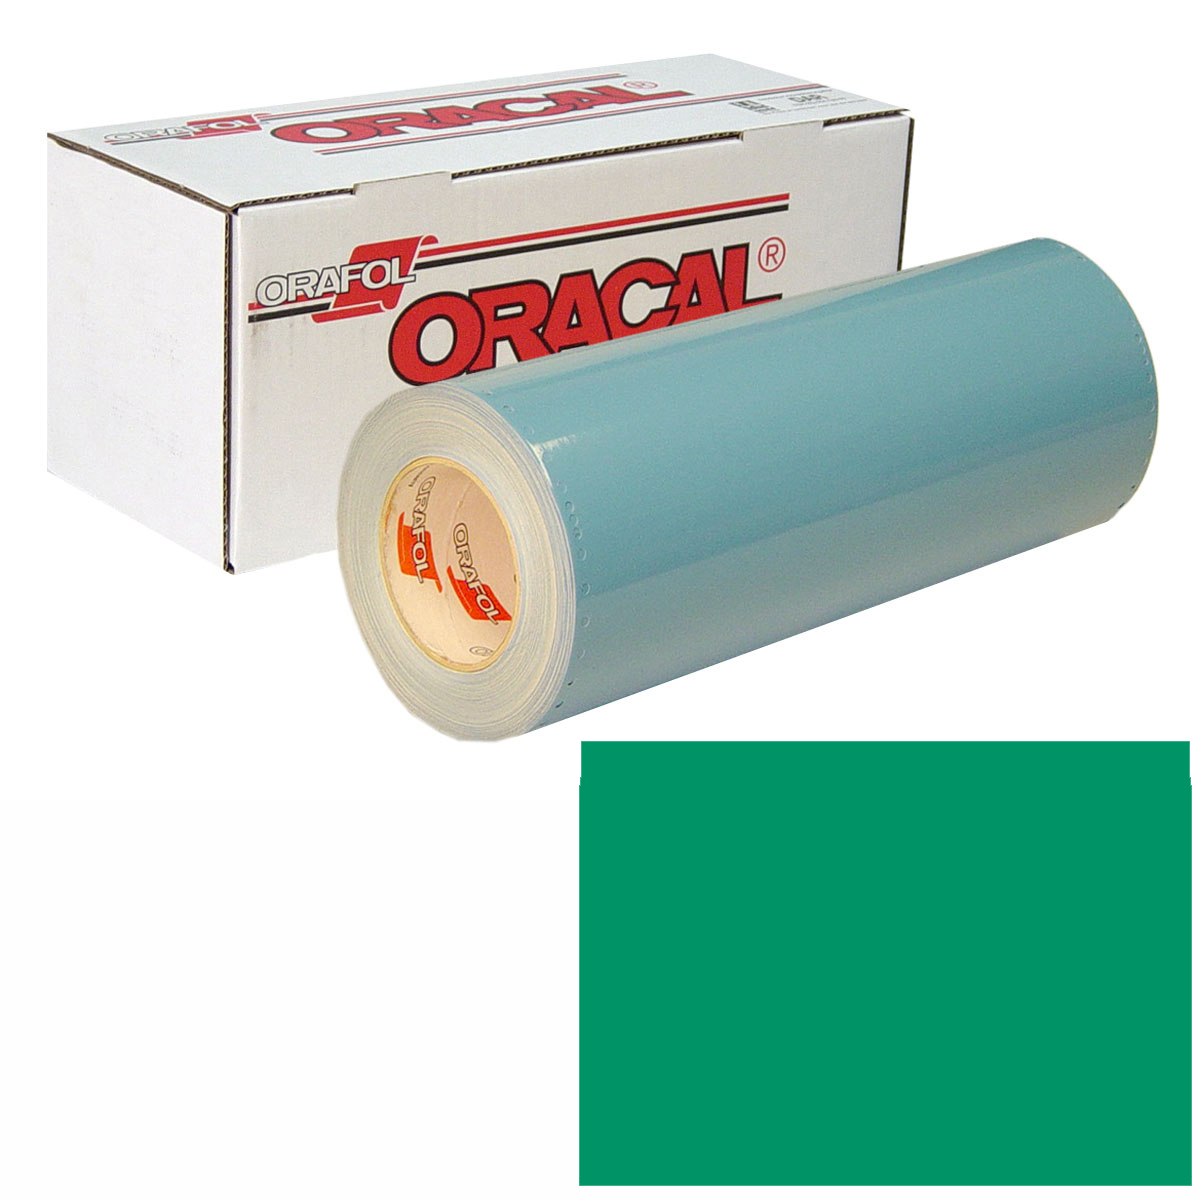 ORACAL 751 Unp 24in X 50yd 061 Green